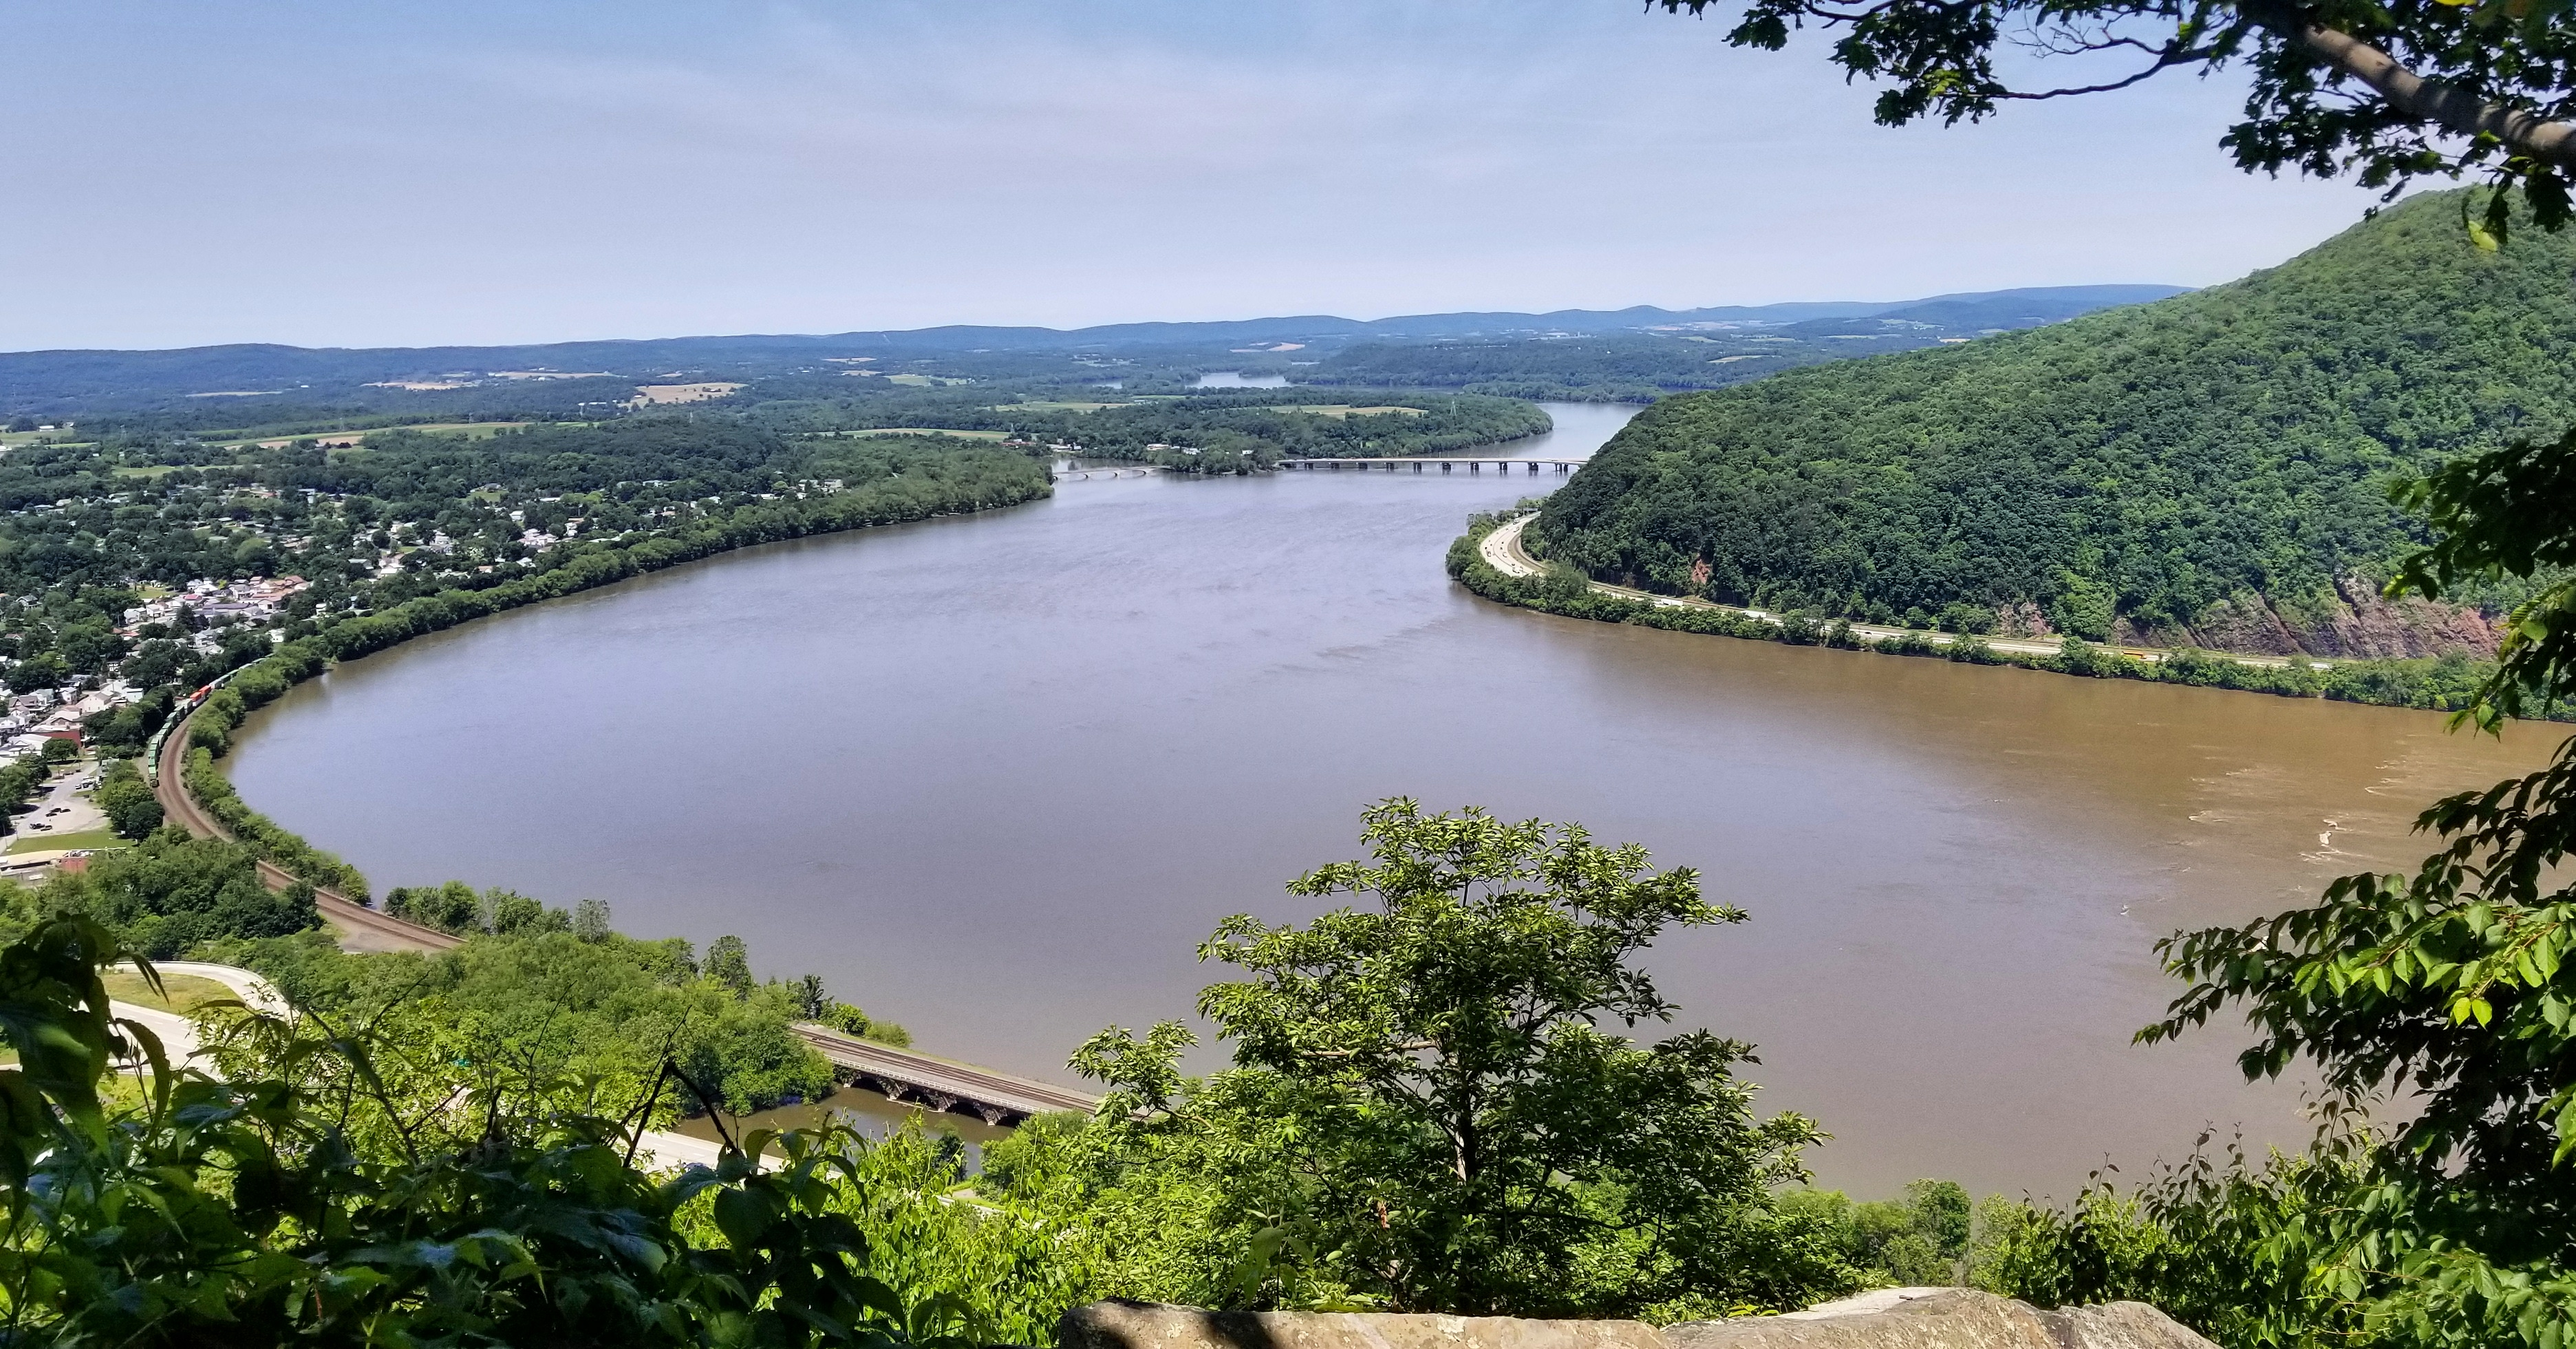 Feces-related bacteria abundant in Harrisburg waterways, well above safe levels: environmentalists